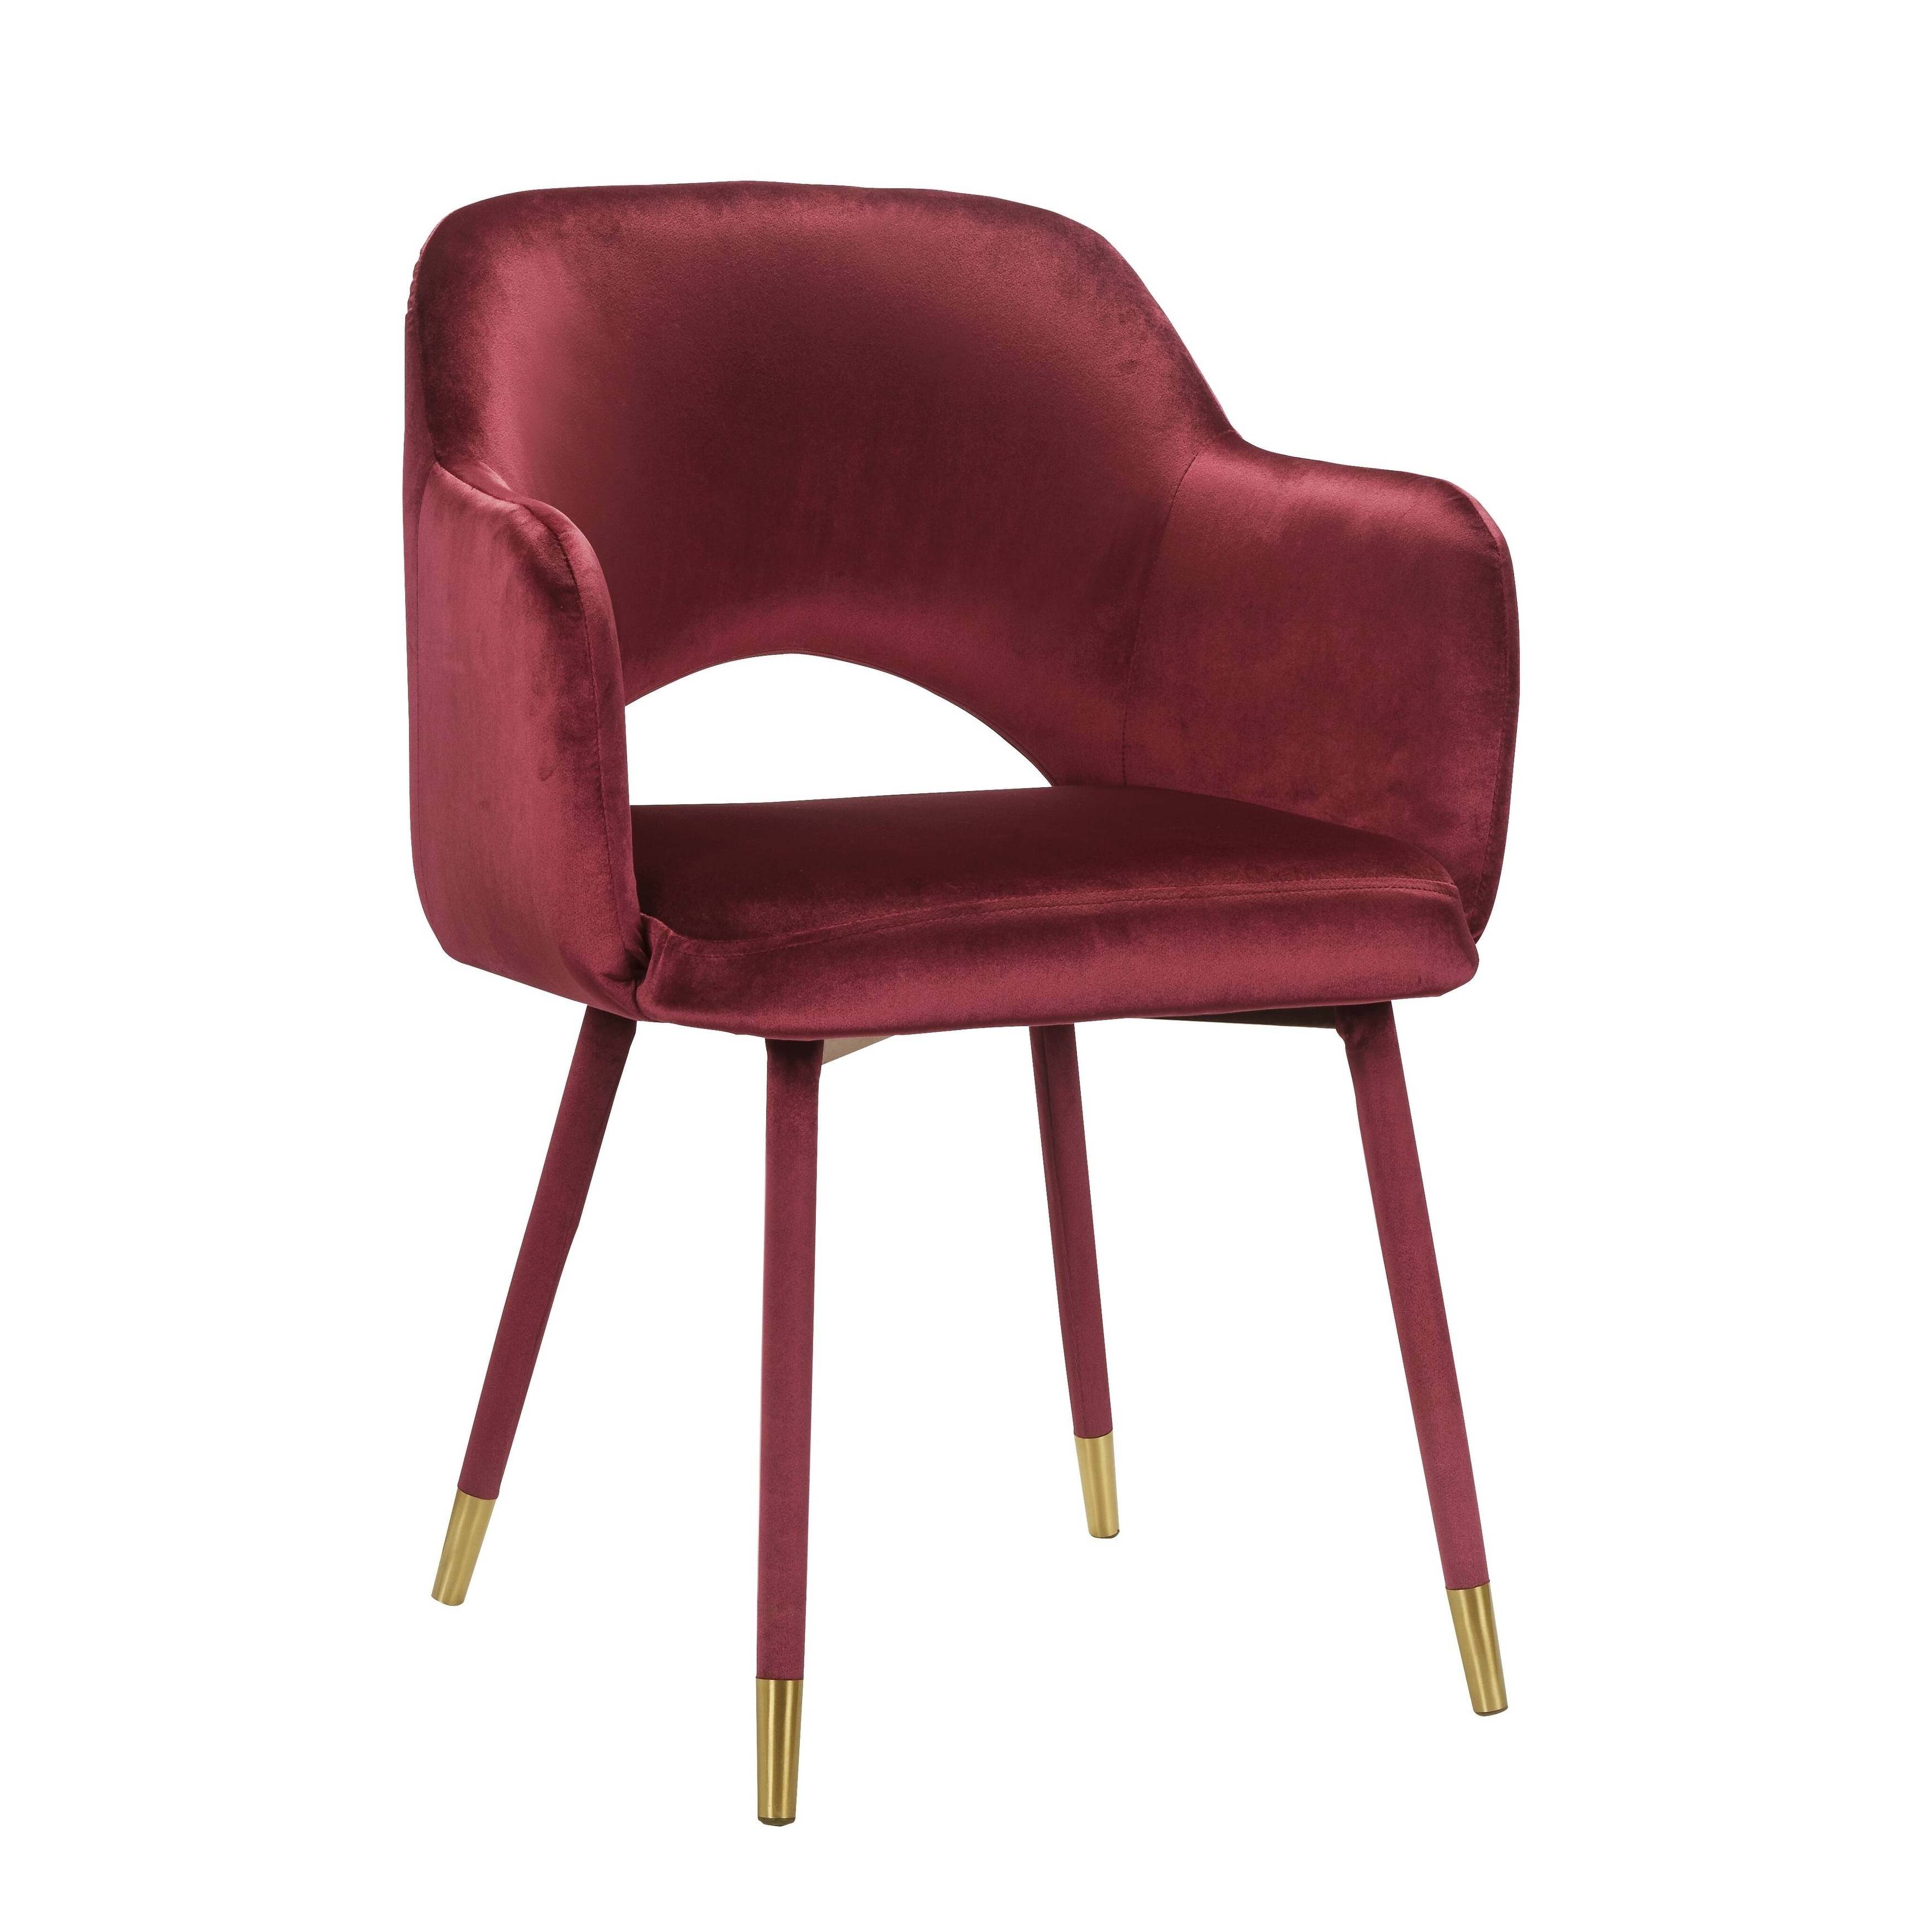 Shop Black Friday Deals On Acme Applewood Accent Chair In Bordeaux Red Velvet Gold Overstock 30876319